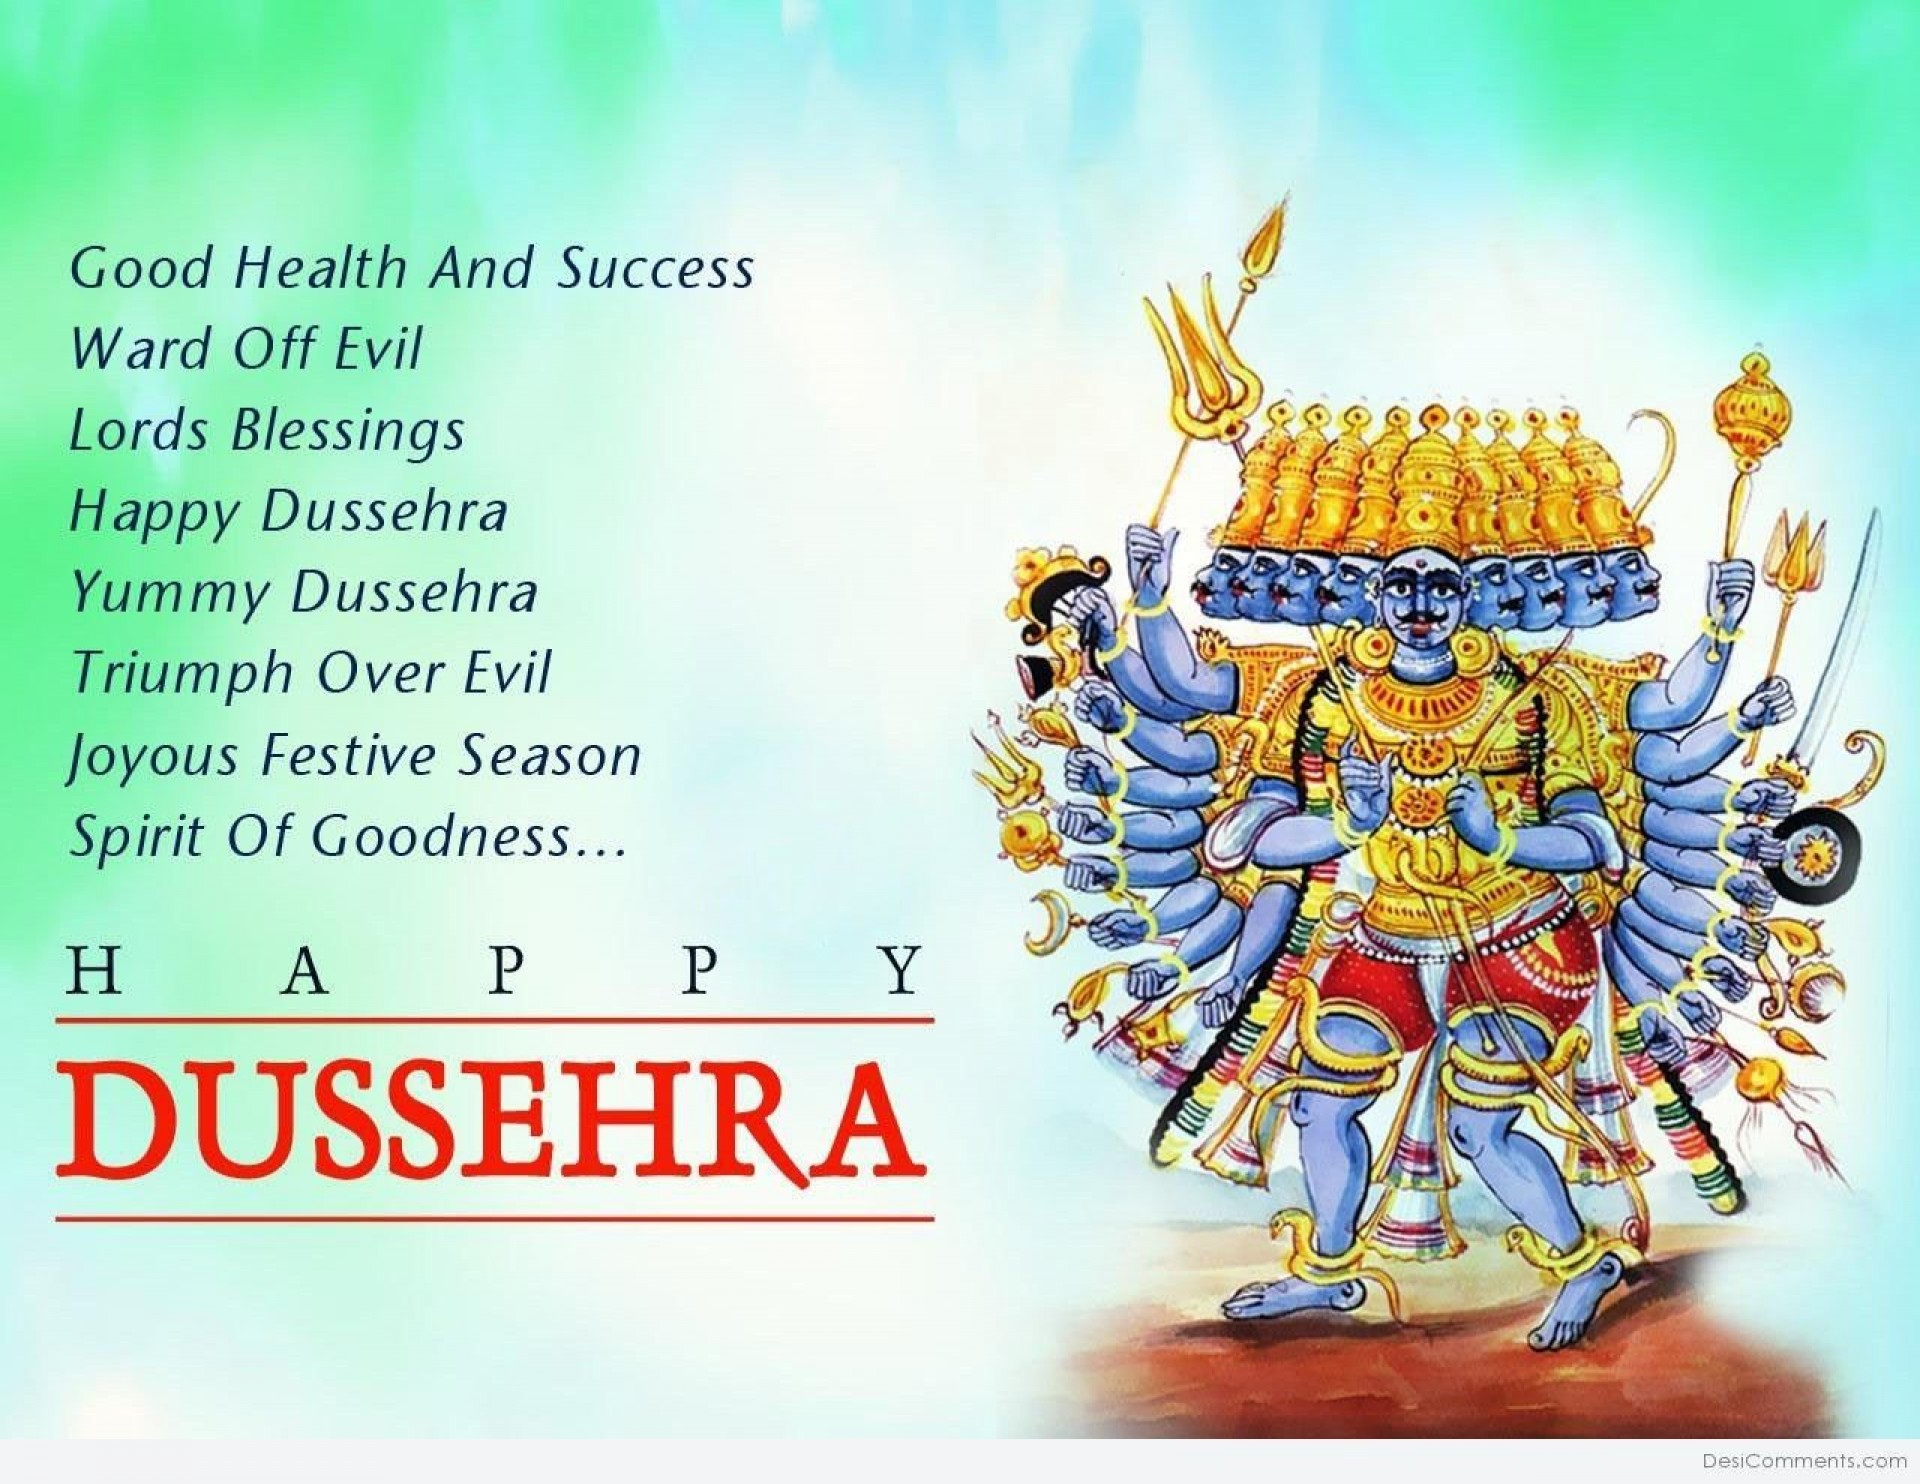 005 Essay On Dussehra Festival In English Surprising 1920